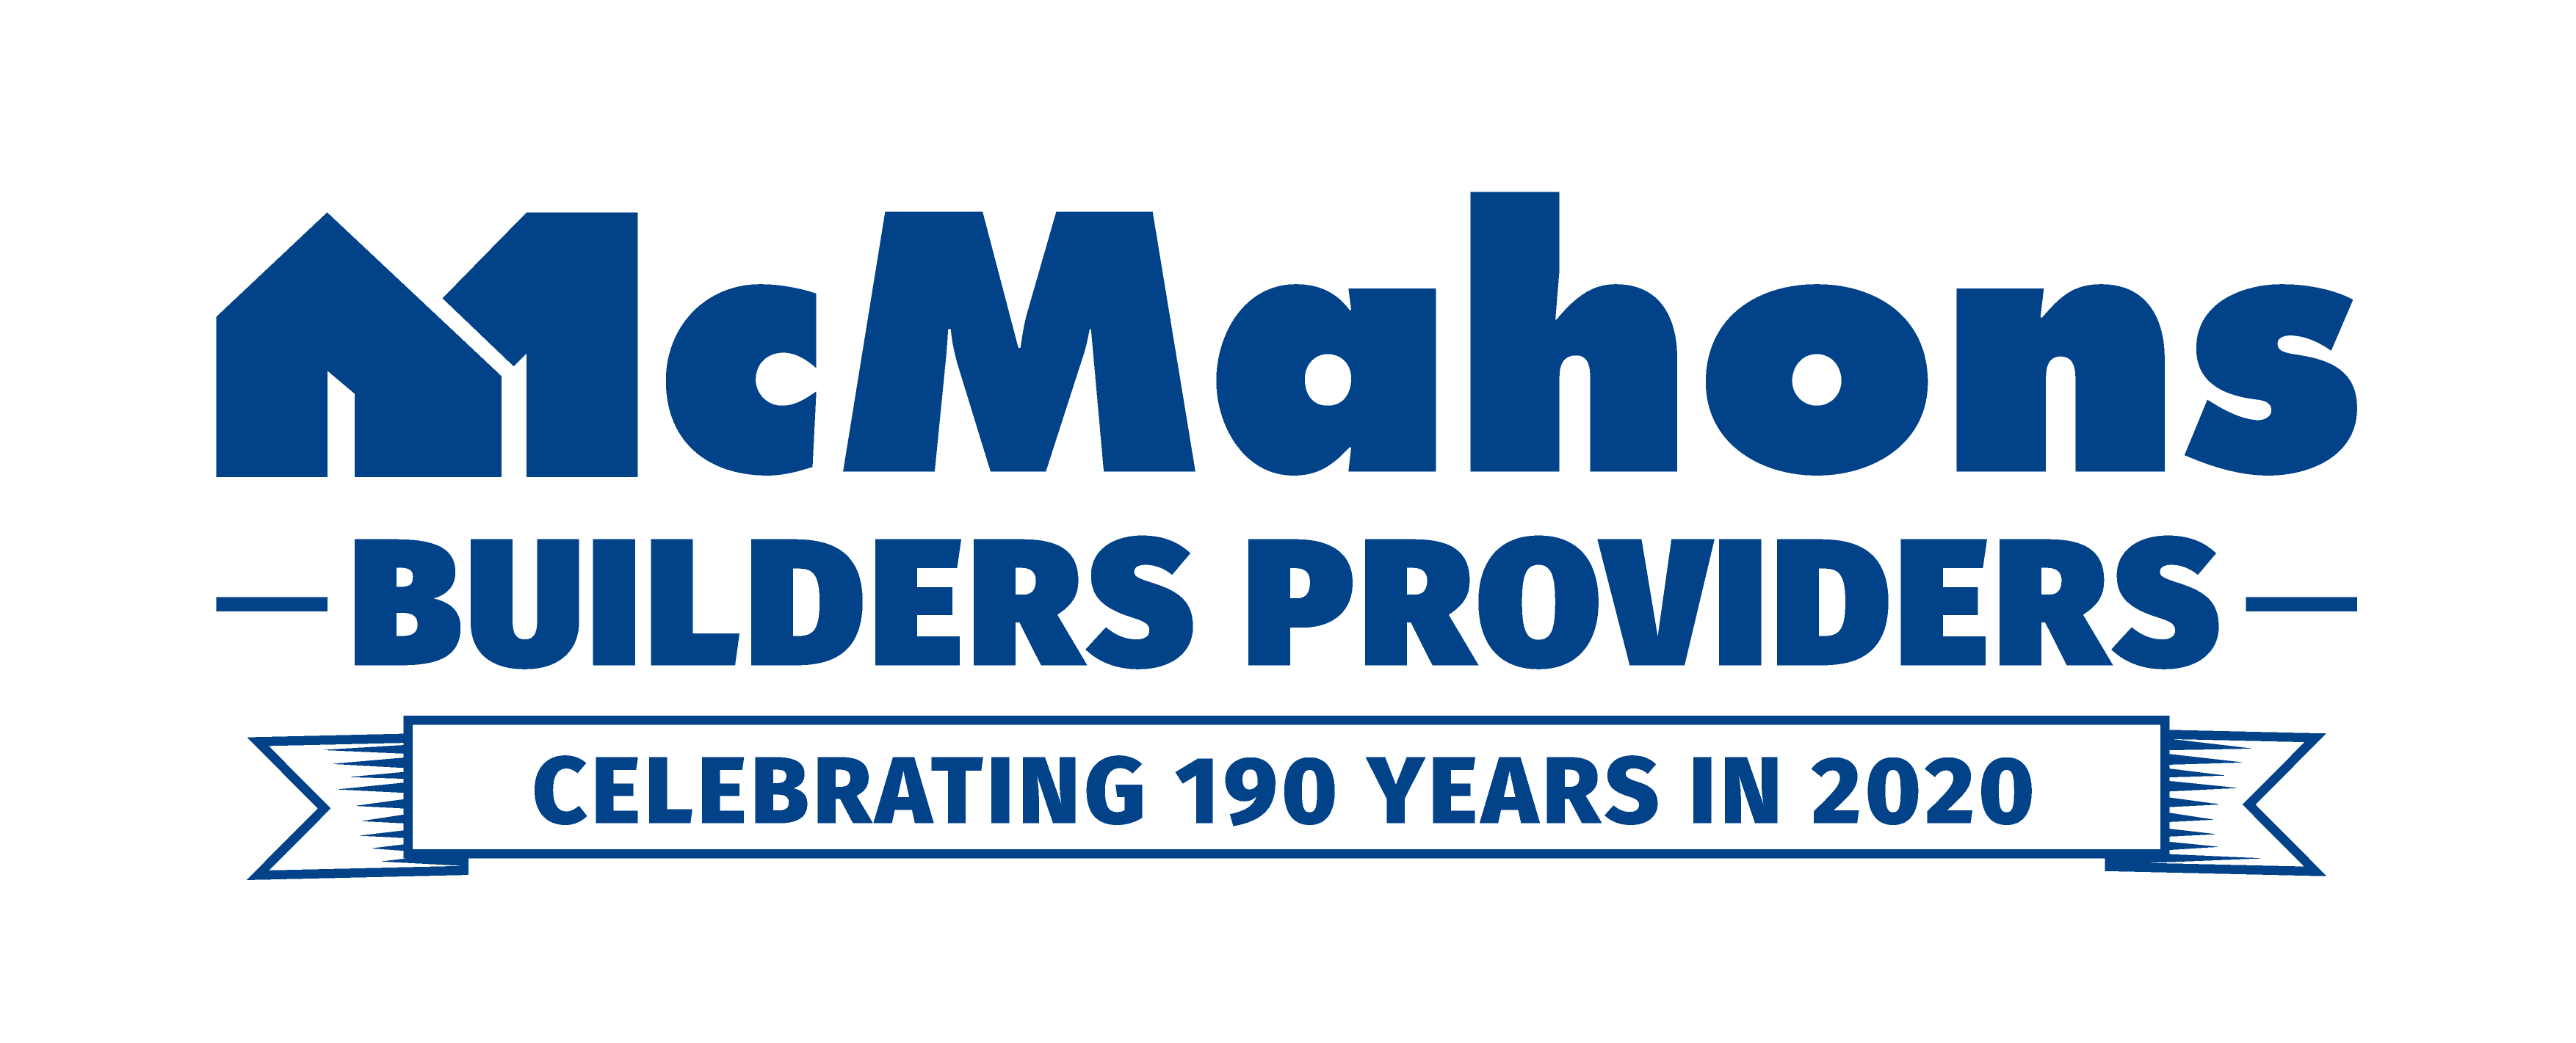 McMahons Builders Providers